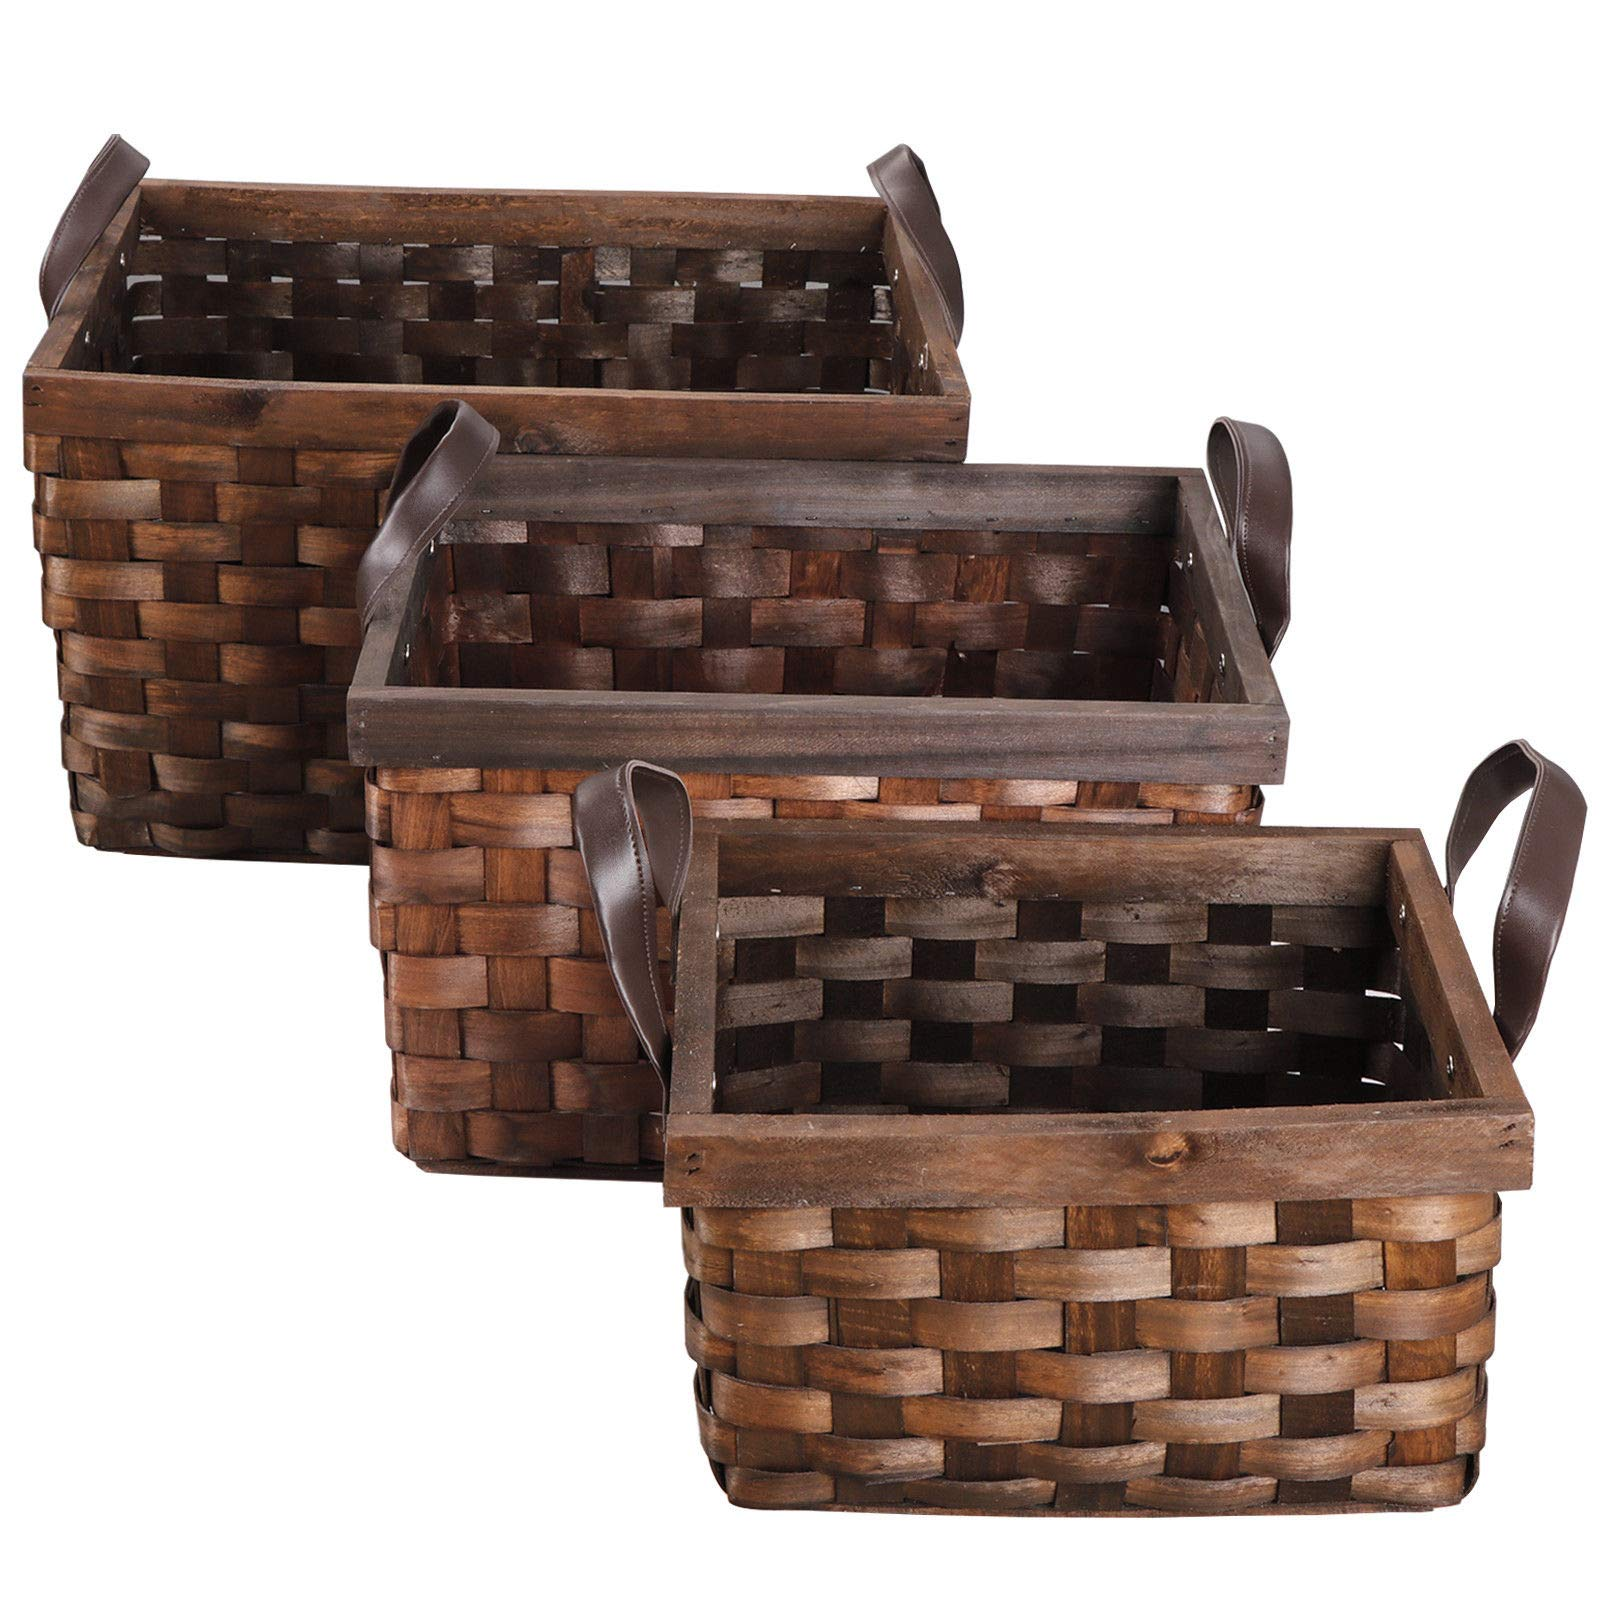 3Pcs Wicker Rattan Woven Storage Bin Basket Food Fruit Container W/Leather Tote